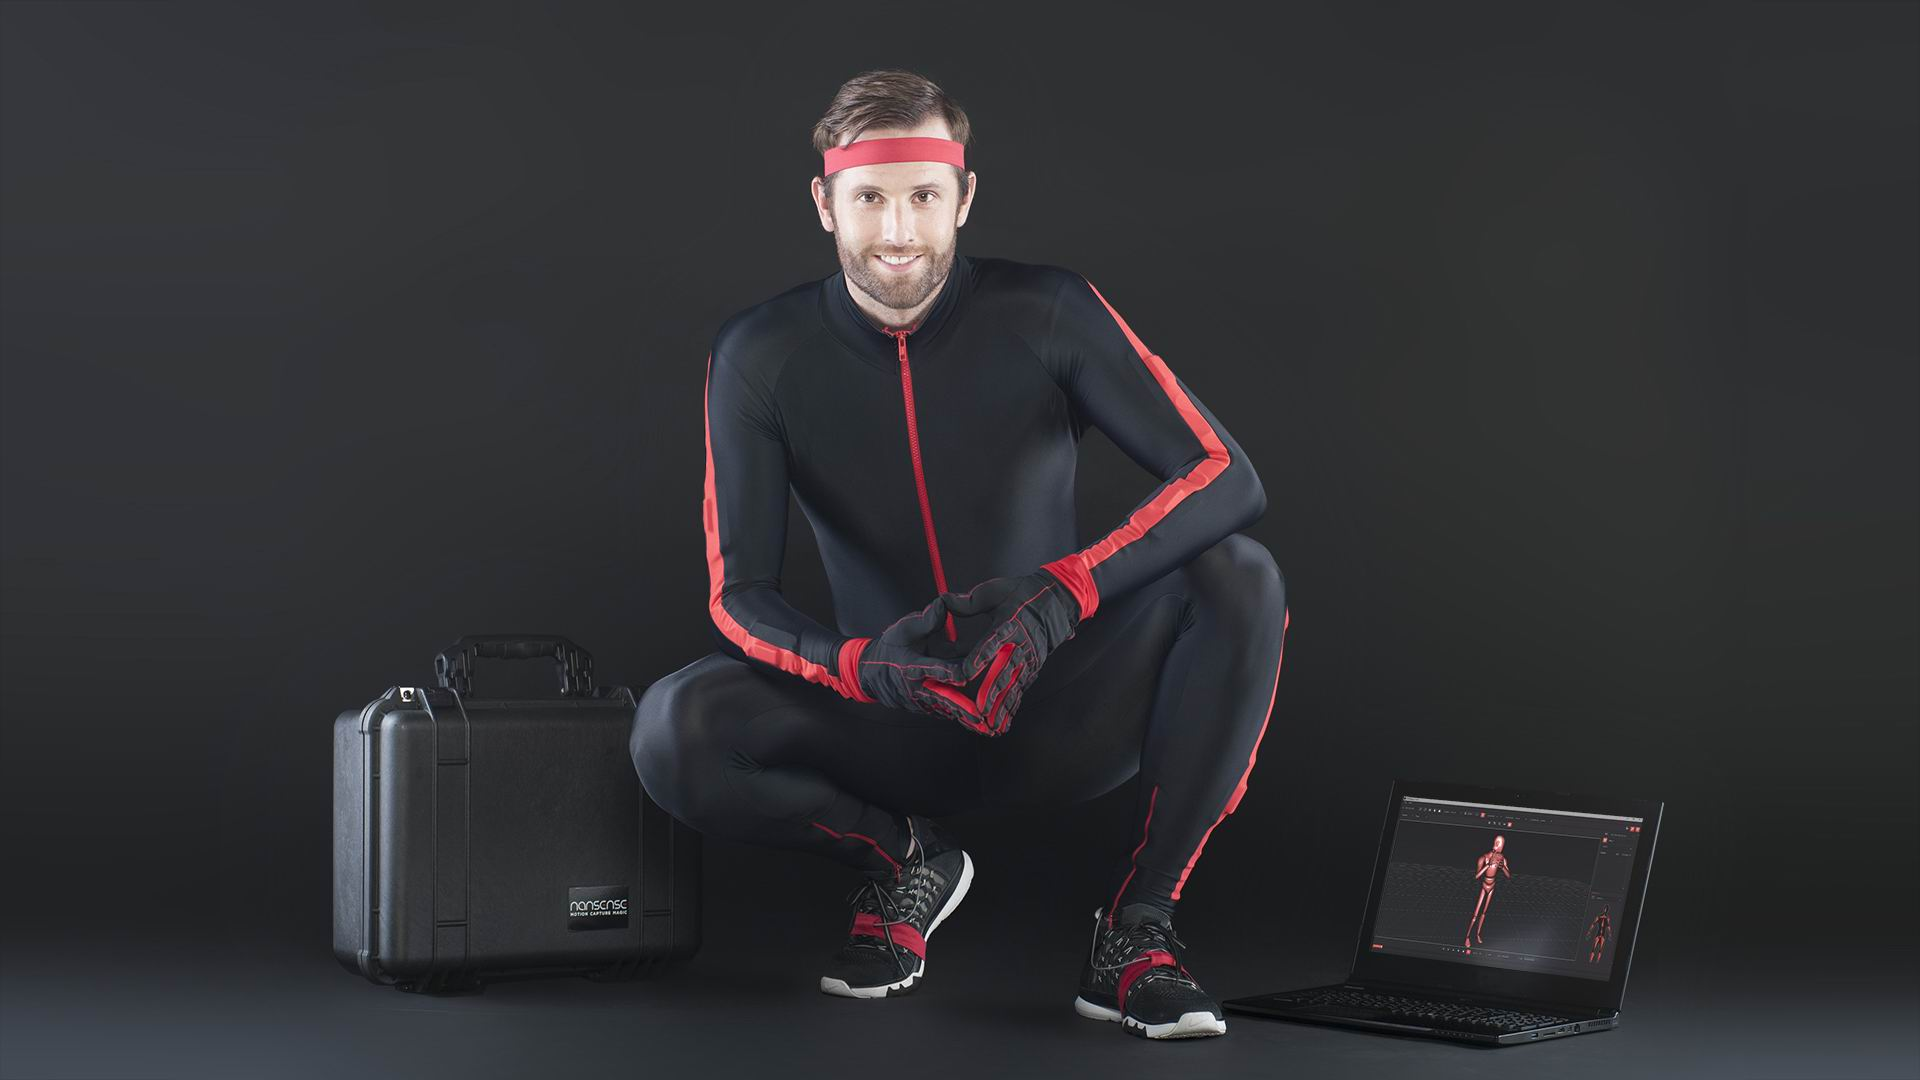 Inertial Motion Capture Suit and Gloves